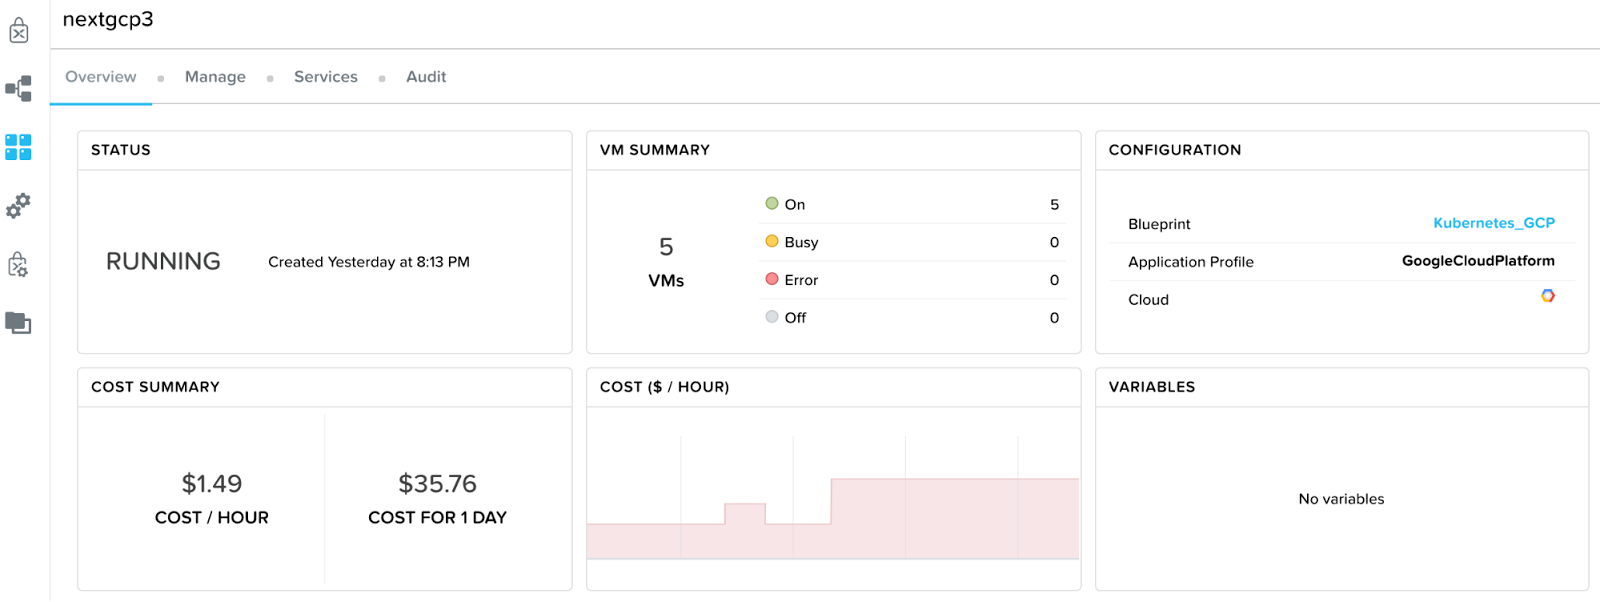 Google cloud platform blog going hybrid with kubernetes on google the kubernetes cluster is up and running on compute engine within a couple of minutes again with five vms one master node four worker nodes malvernweather Images